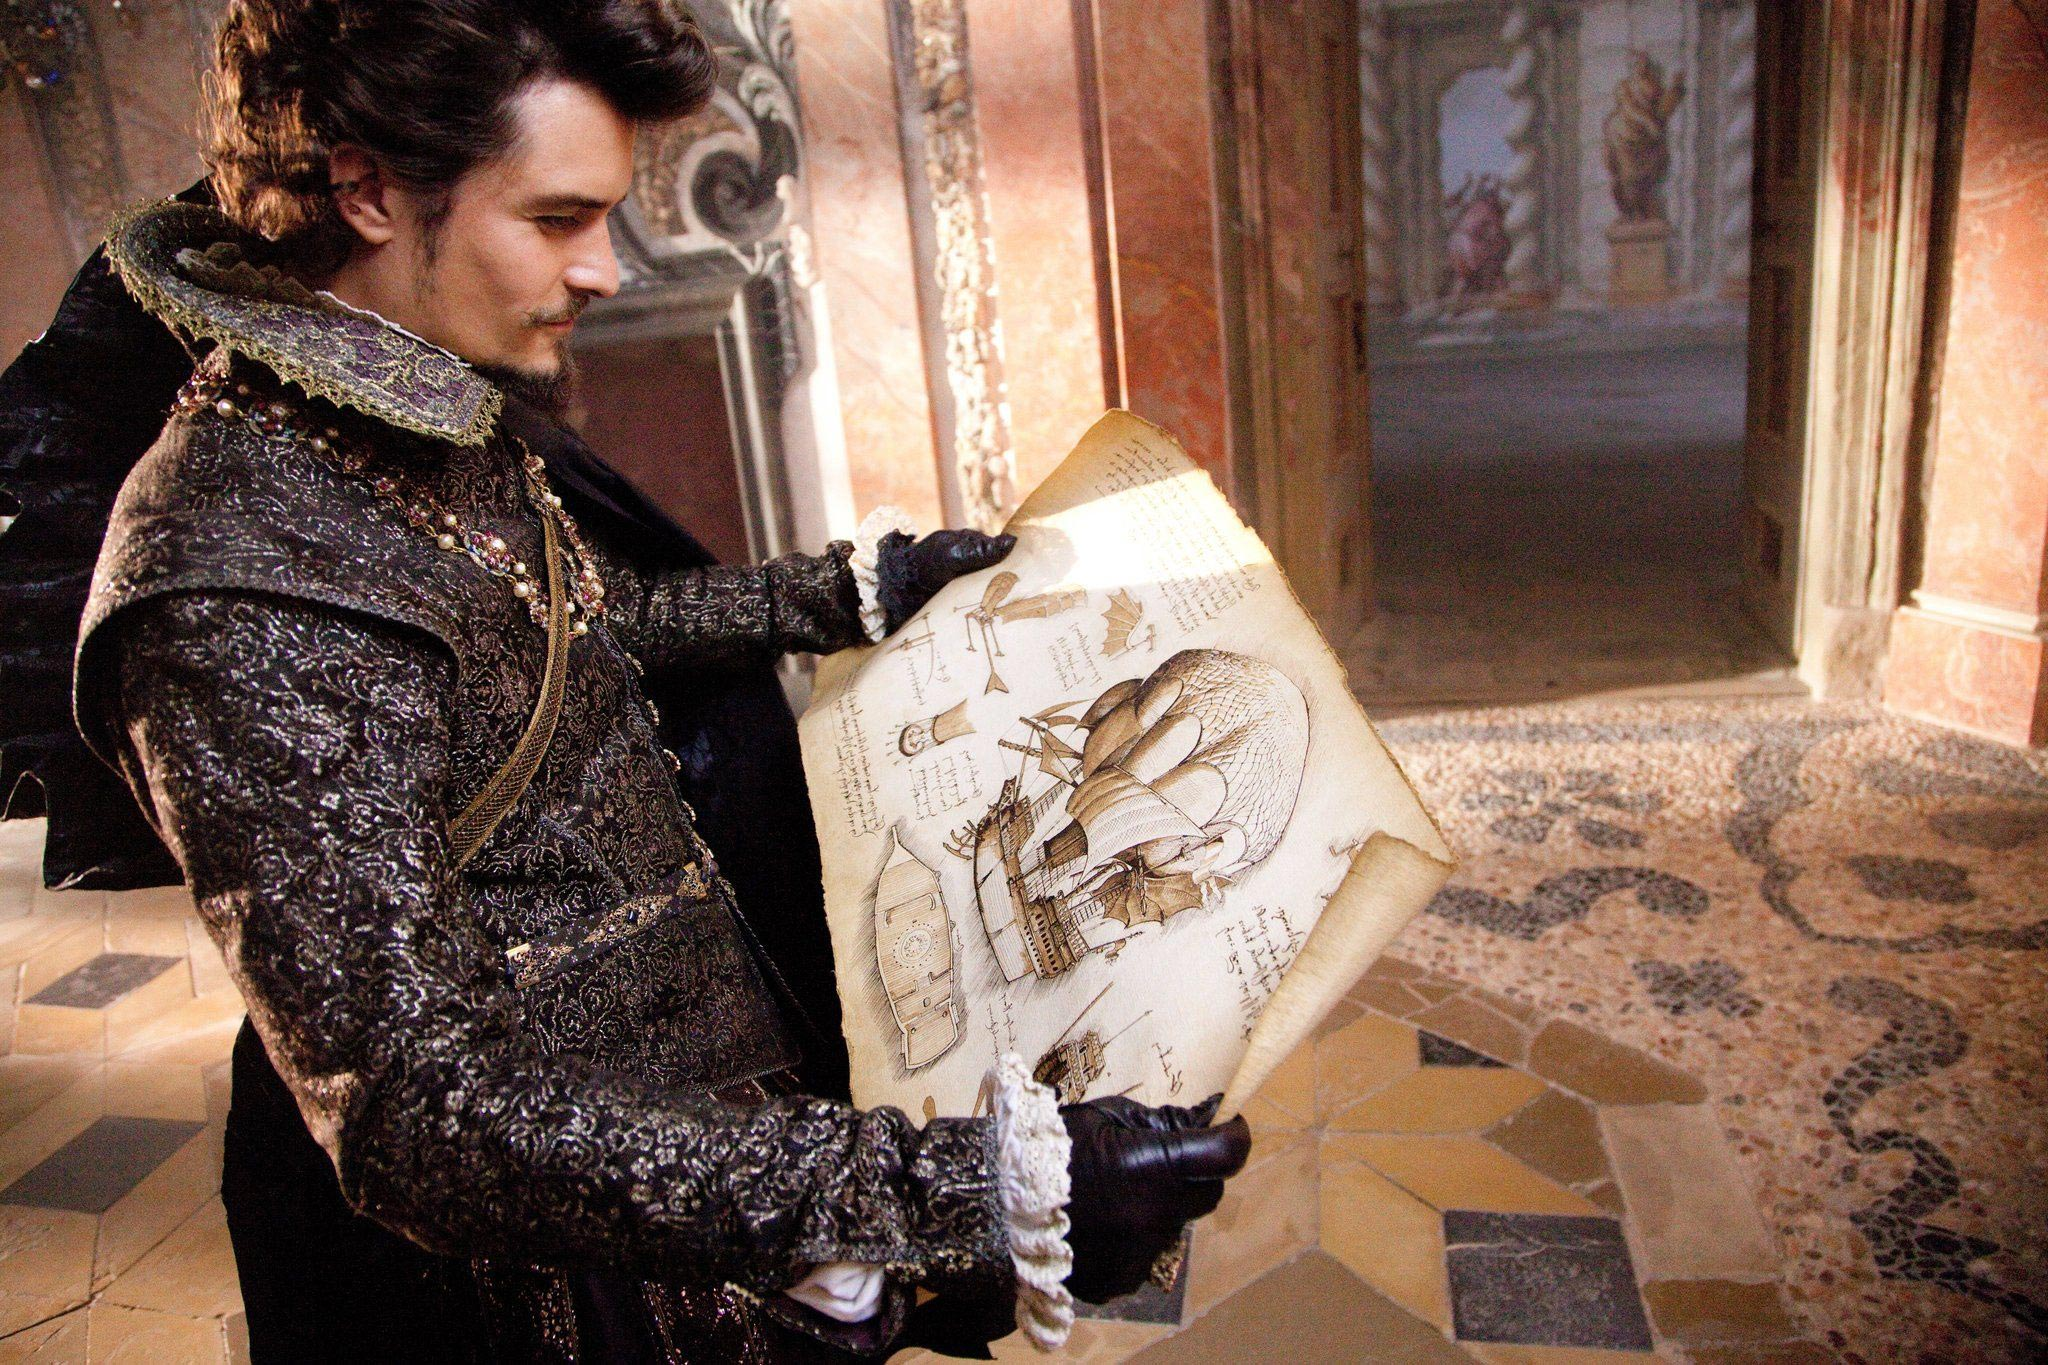 Orlando Bloom in The Three Musketeers